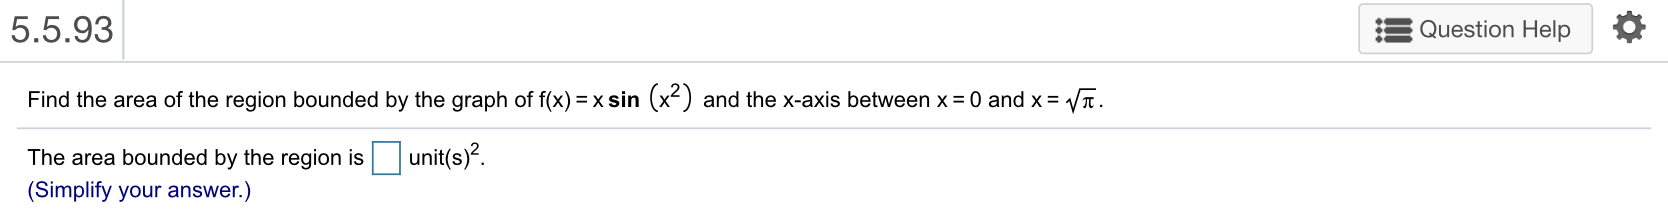 5.5.93 Question Help Find the area of the region bounded by the graph of fx)- xsin (x2) and the x-axis between x 0 and xV. The area bounded by the region isunit(s)-. (Simplify your answer.)